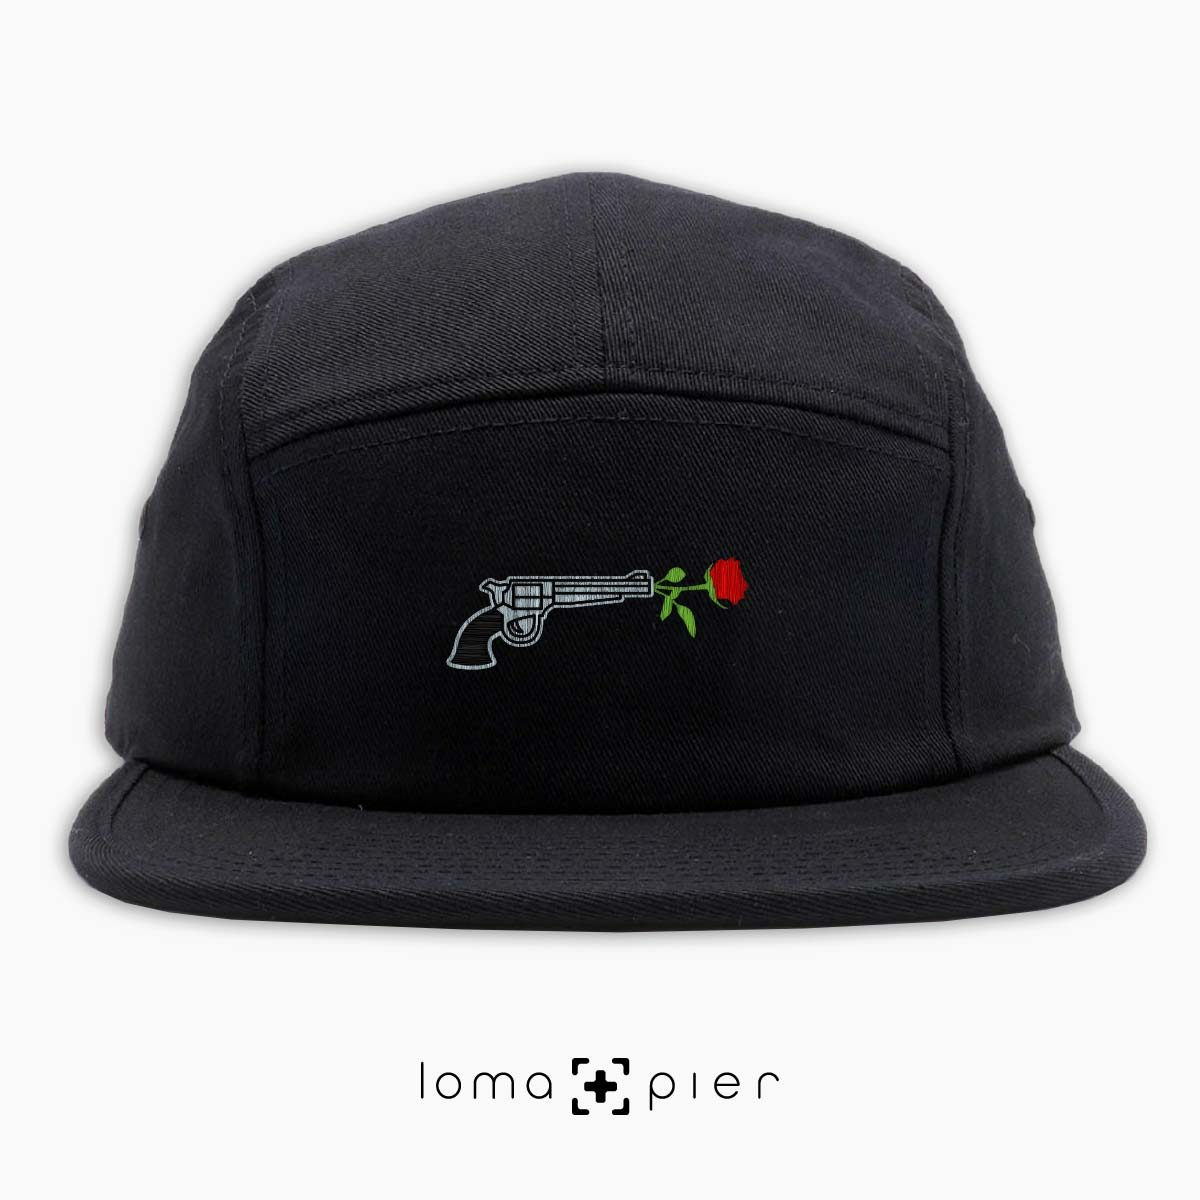 ROSE REVOLVER icon embroidered on a black cotton 5-panel hat with multicolor thread by loma+pier hat store